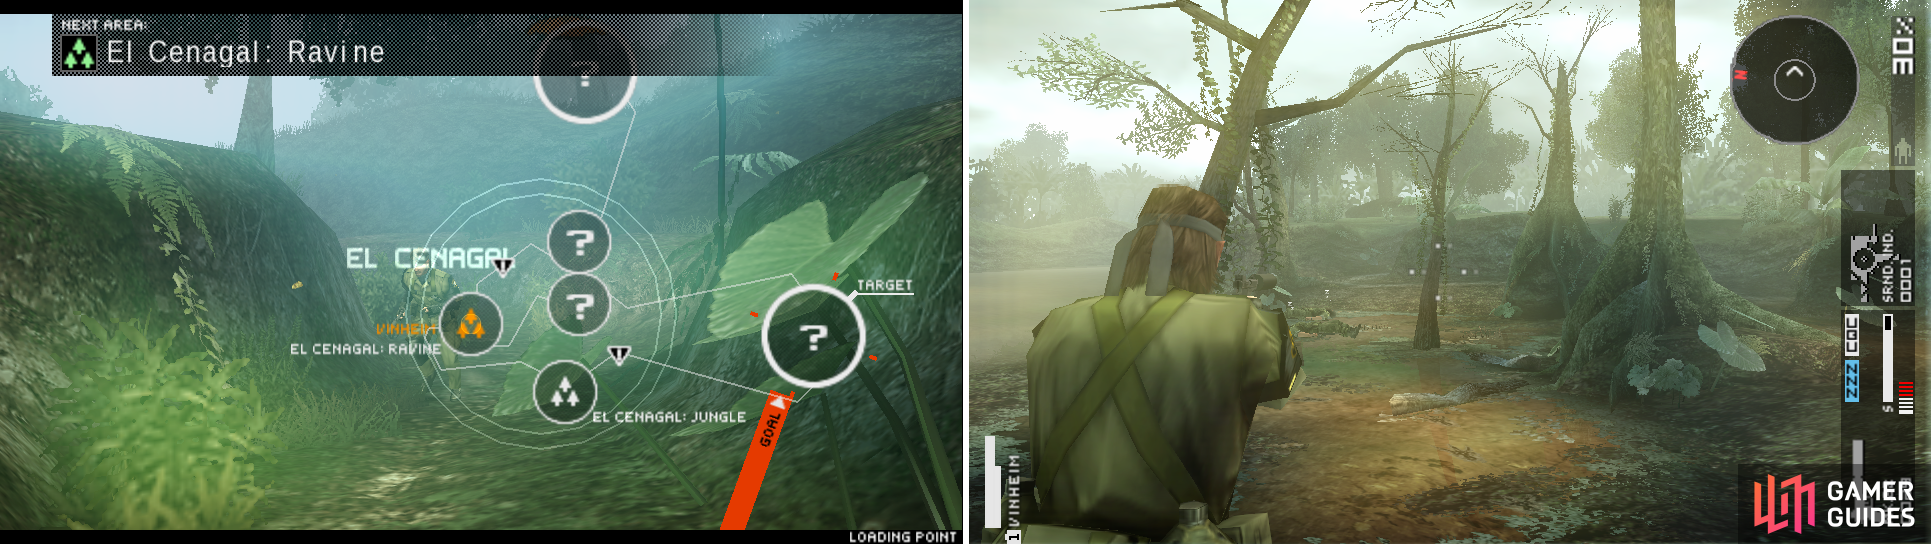 Entering El Cenegal: Ravine where there are no enemies (left picture) and once at El Cenegal: Swamp (right picture) which is marked as the best place to shoot down all 3 enemies.